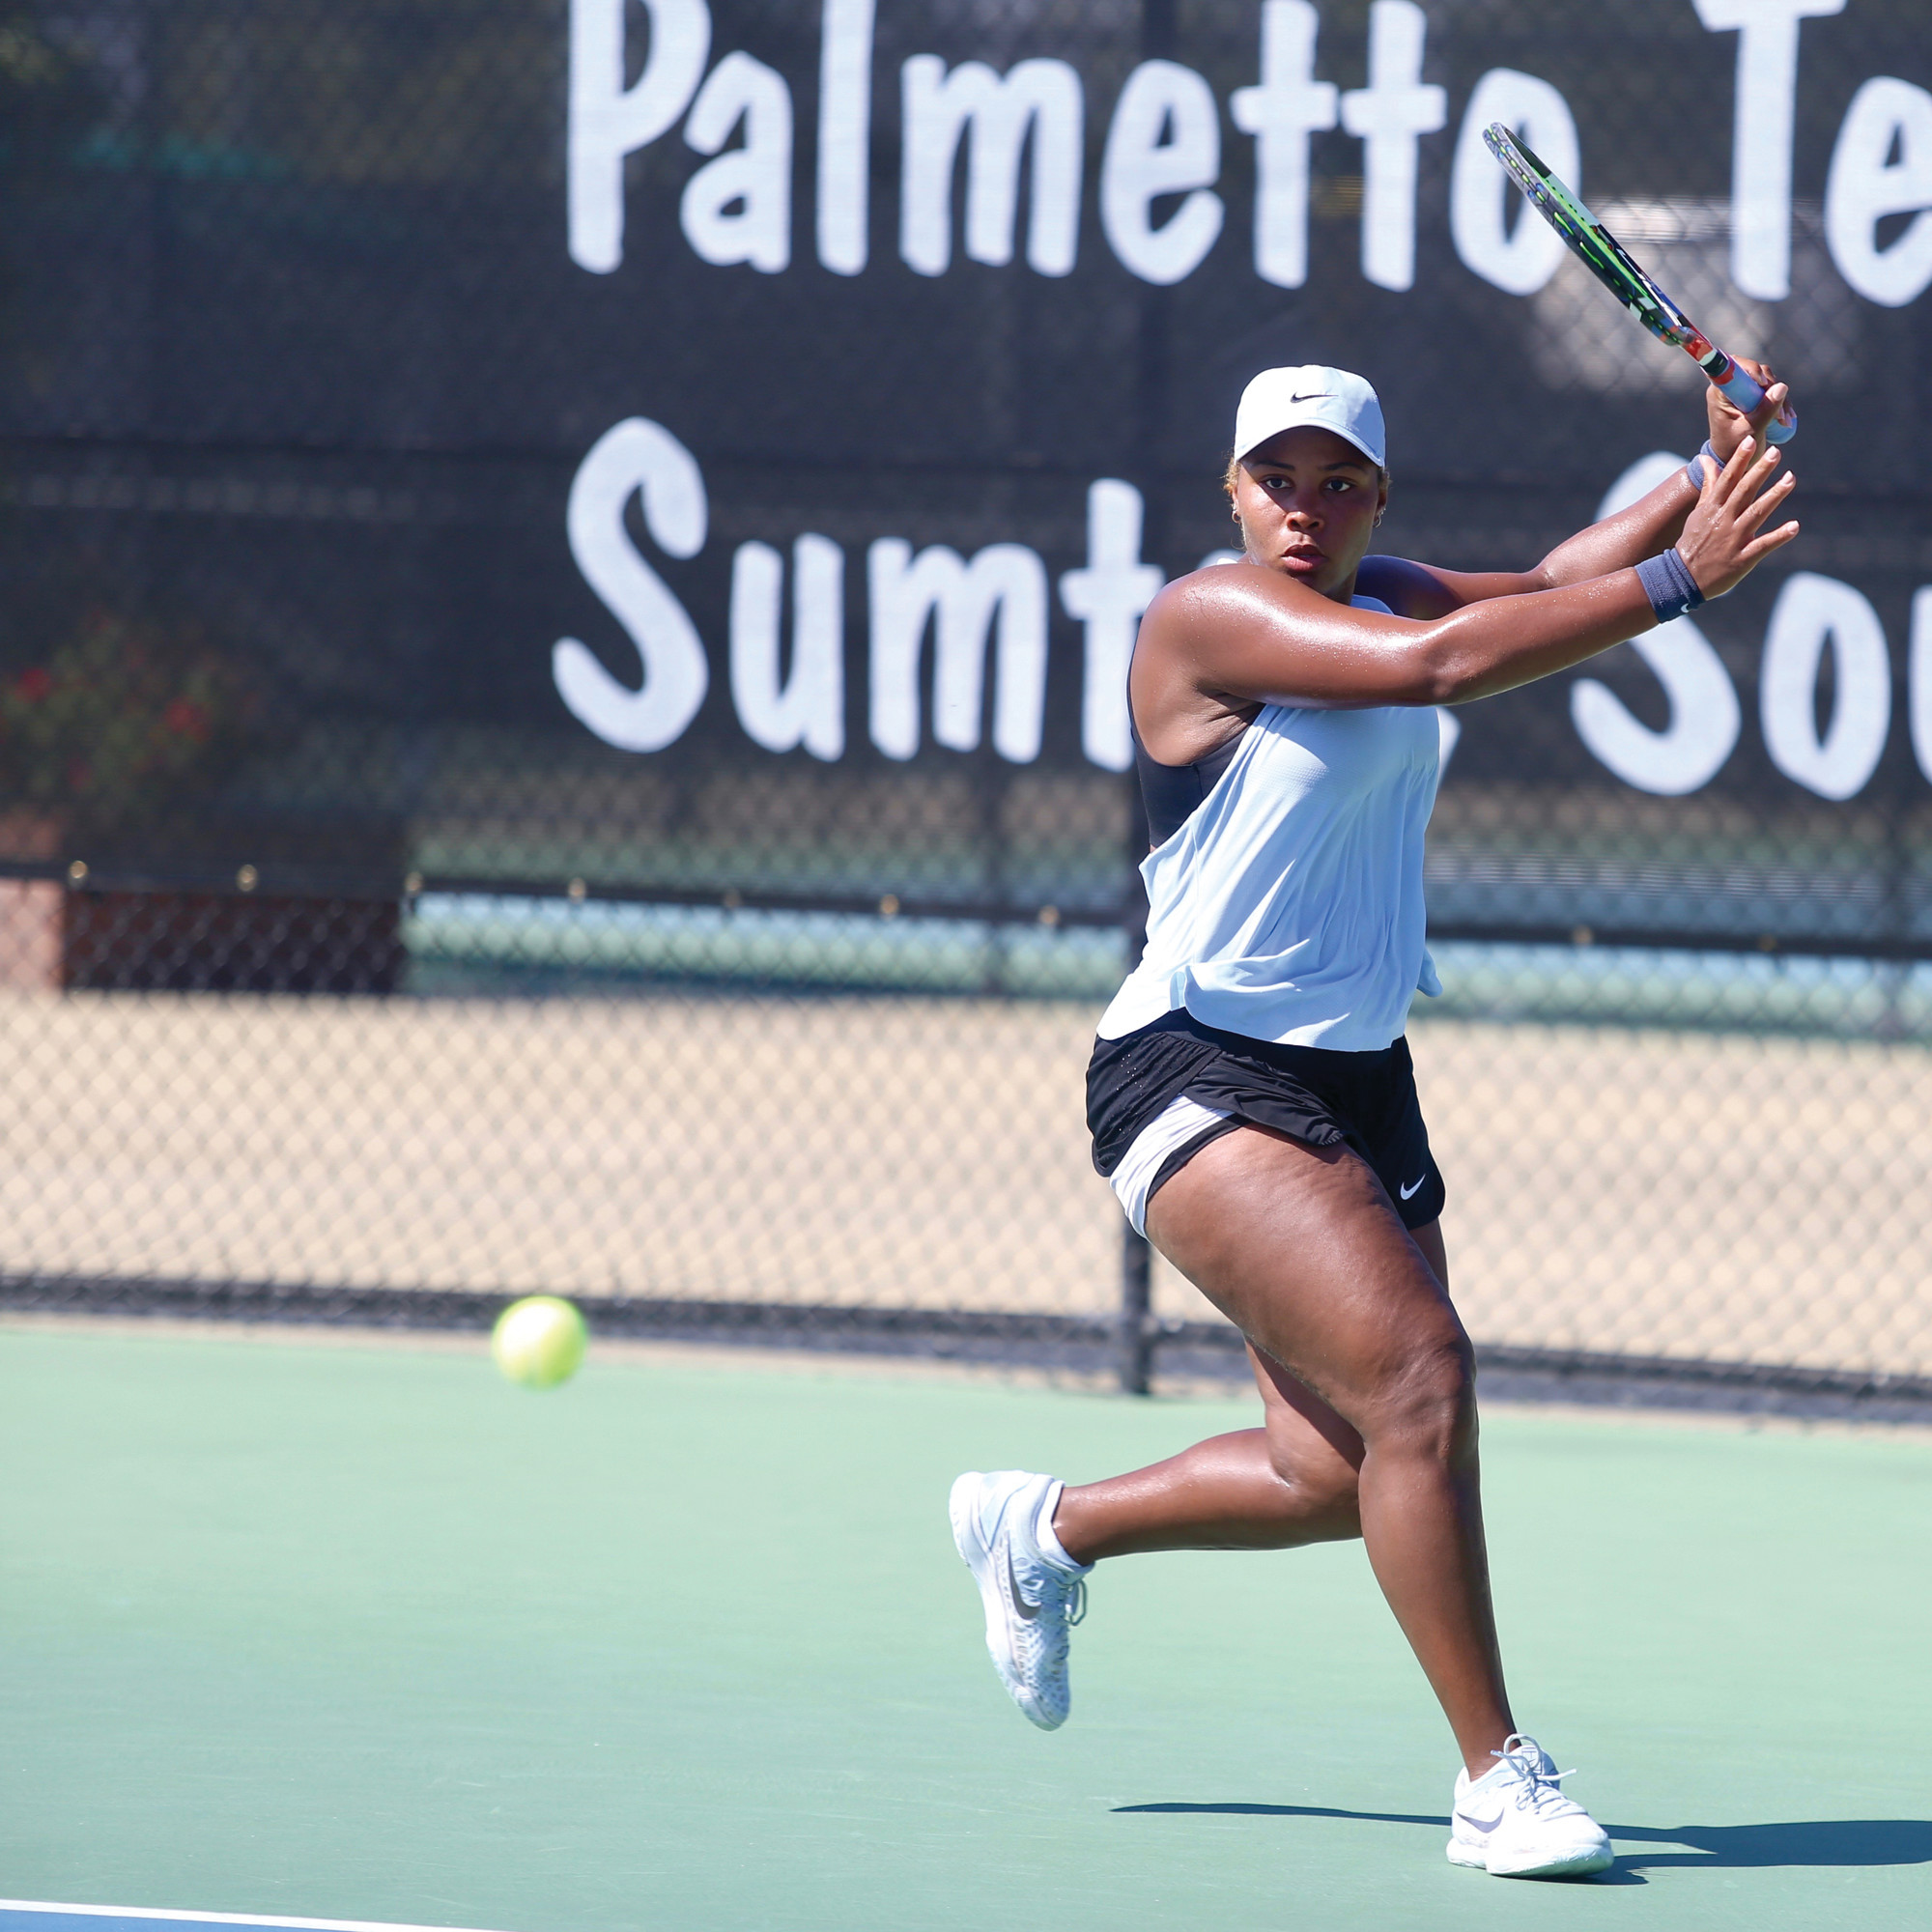 BY TREVOR BAUKNIGHT / THE SUMTER ITEMTaylor Townsend prepares to return a shot during her 6-2, 6-1 victory over Ulrikke Eikeri in the singles championship match of the Sumter Pink Open on Sunday at Palmetto Tennis Center. Townsend was also a part of the winning doubles team.